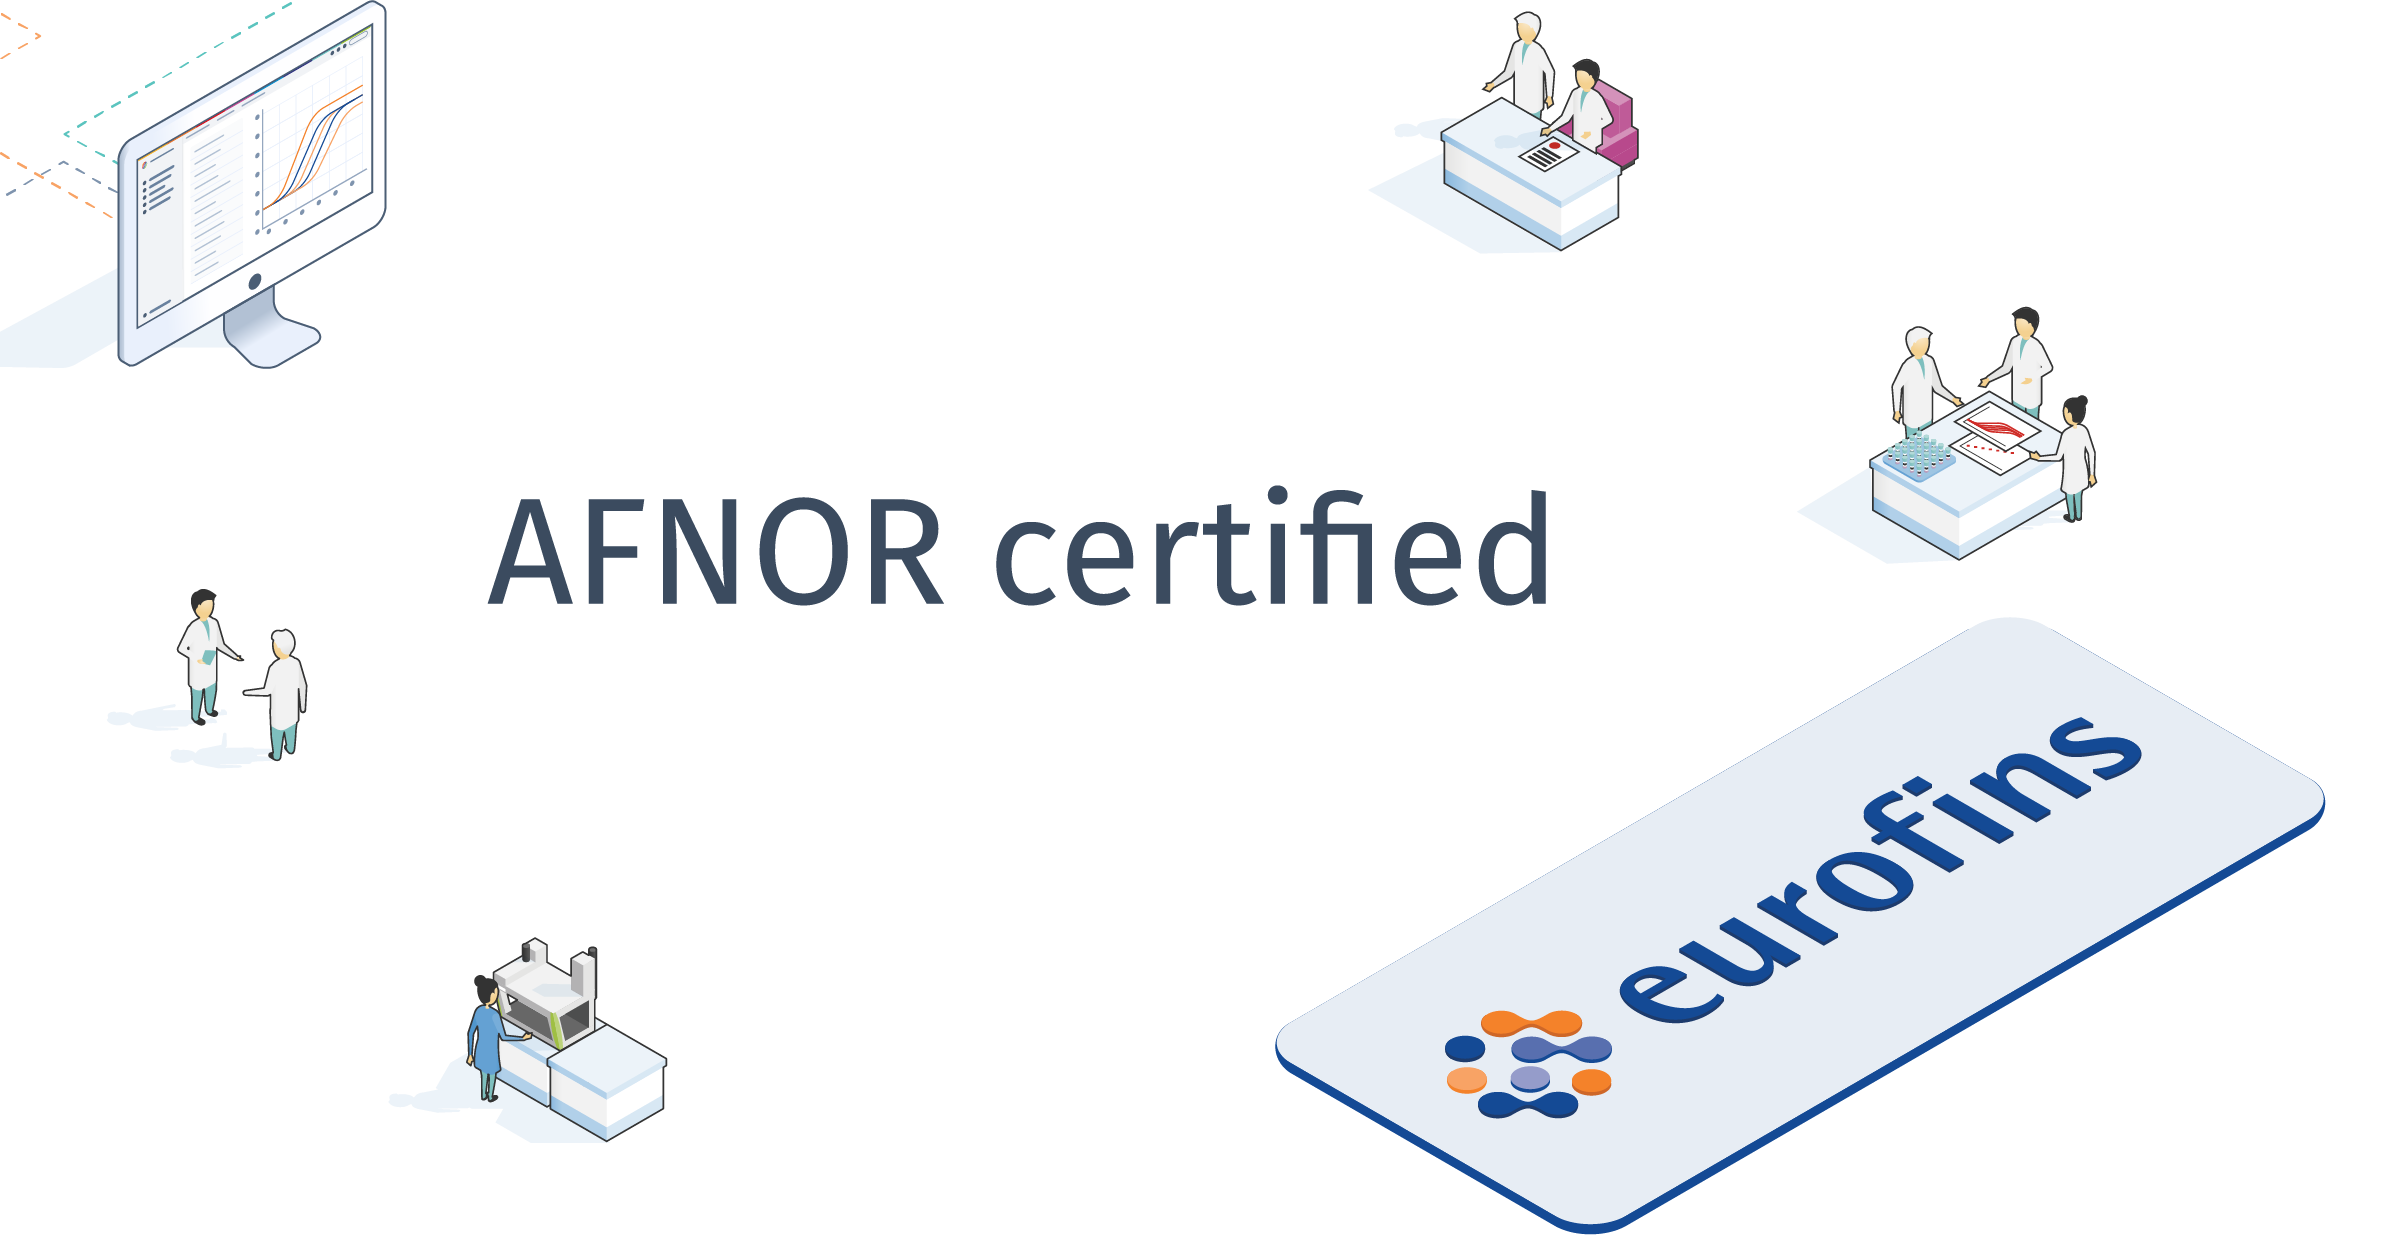 Eurofins successfully certifies kits and software with AFNOR